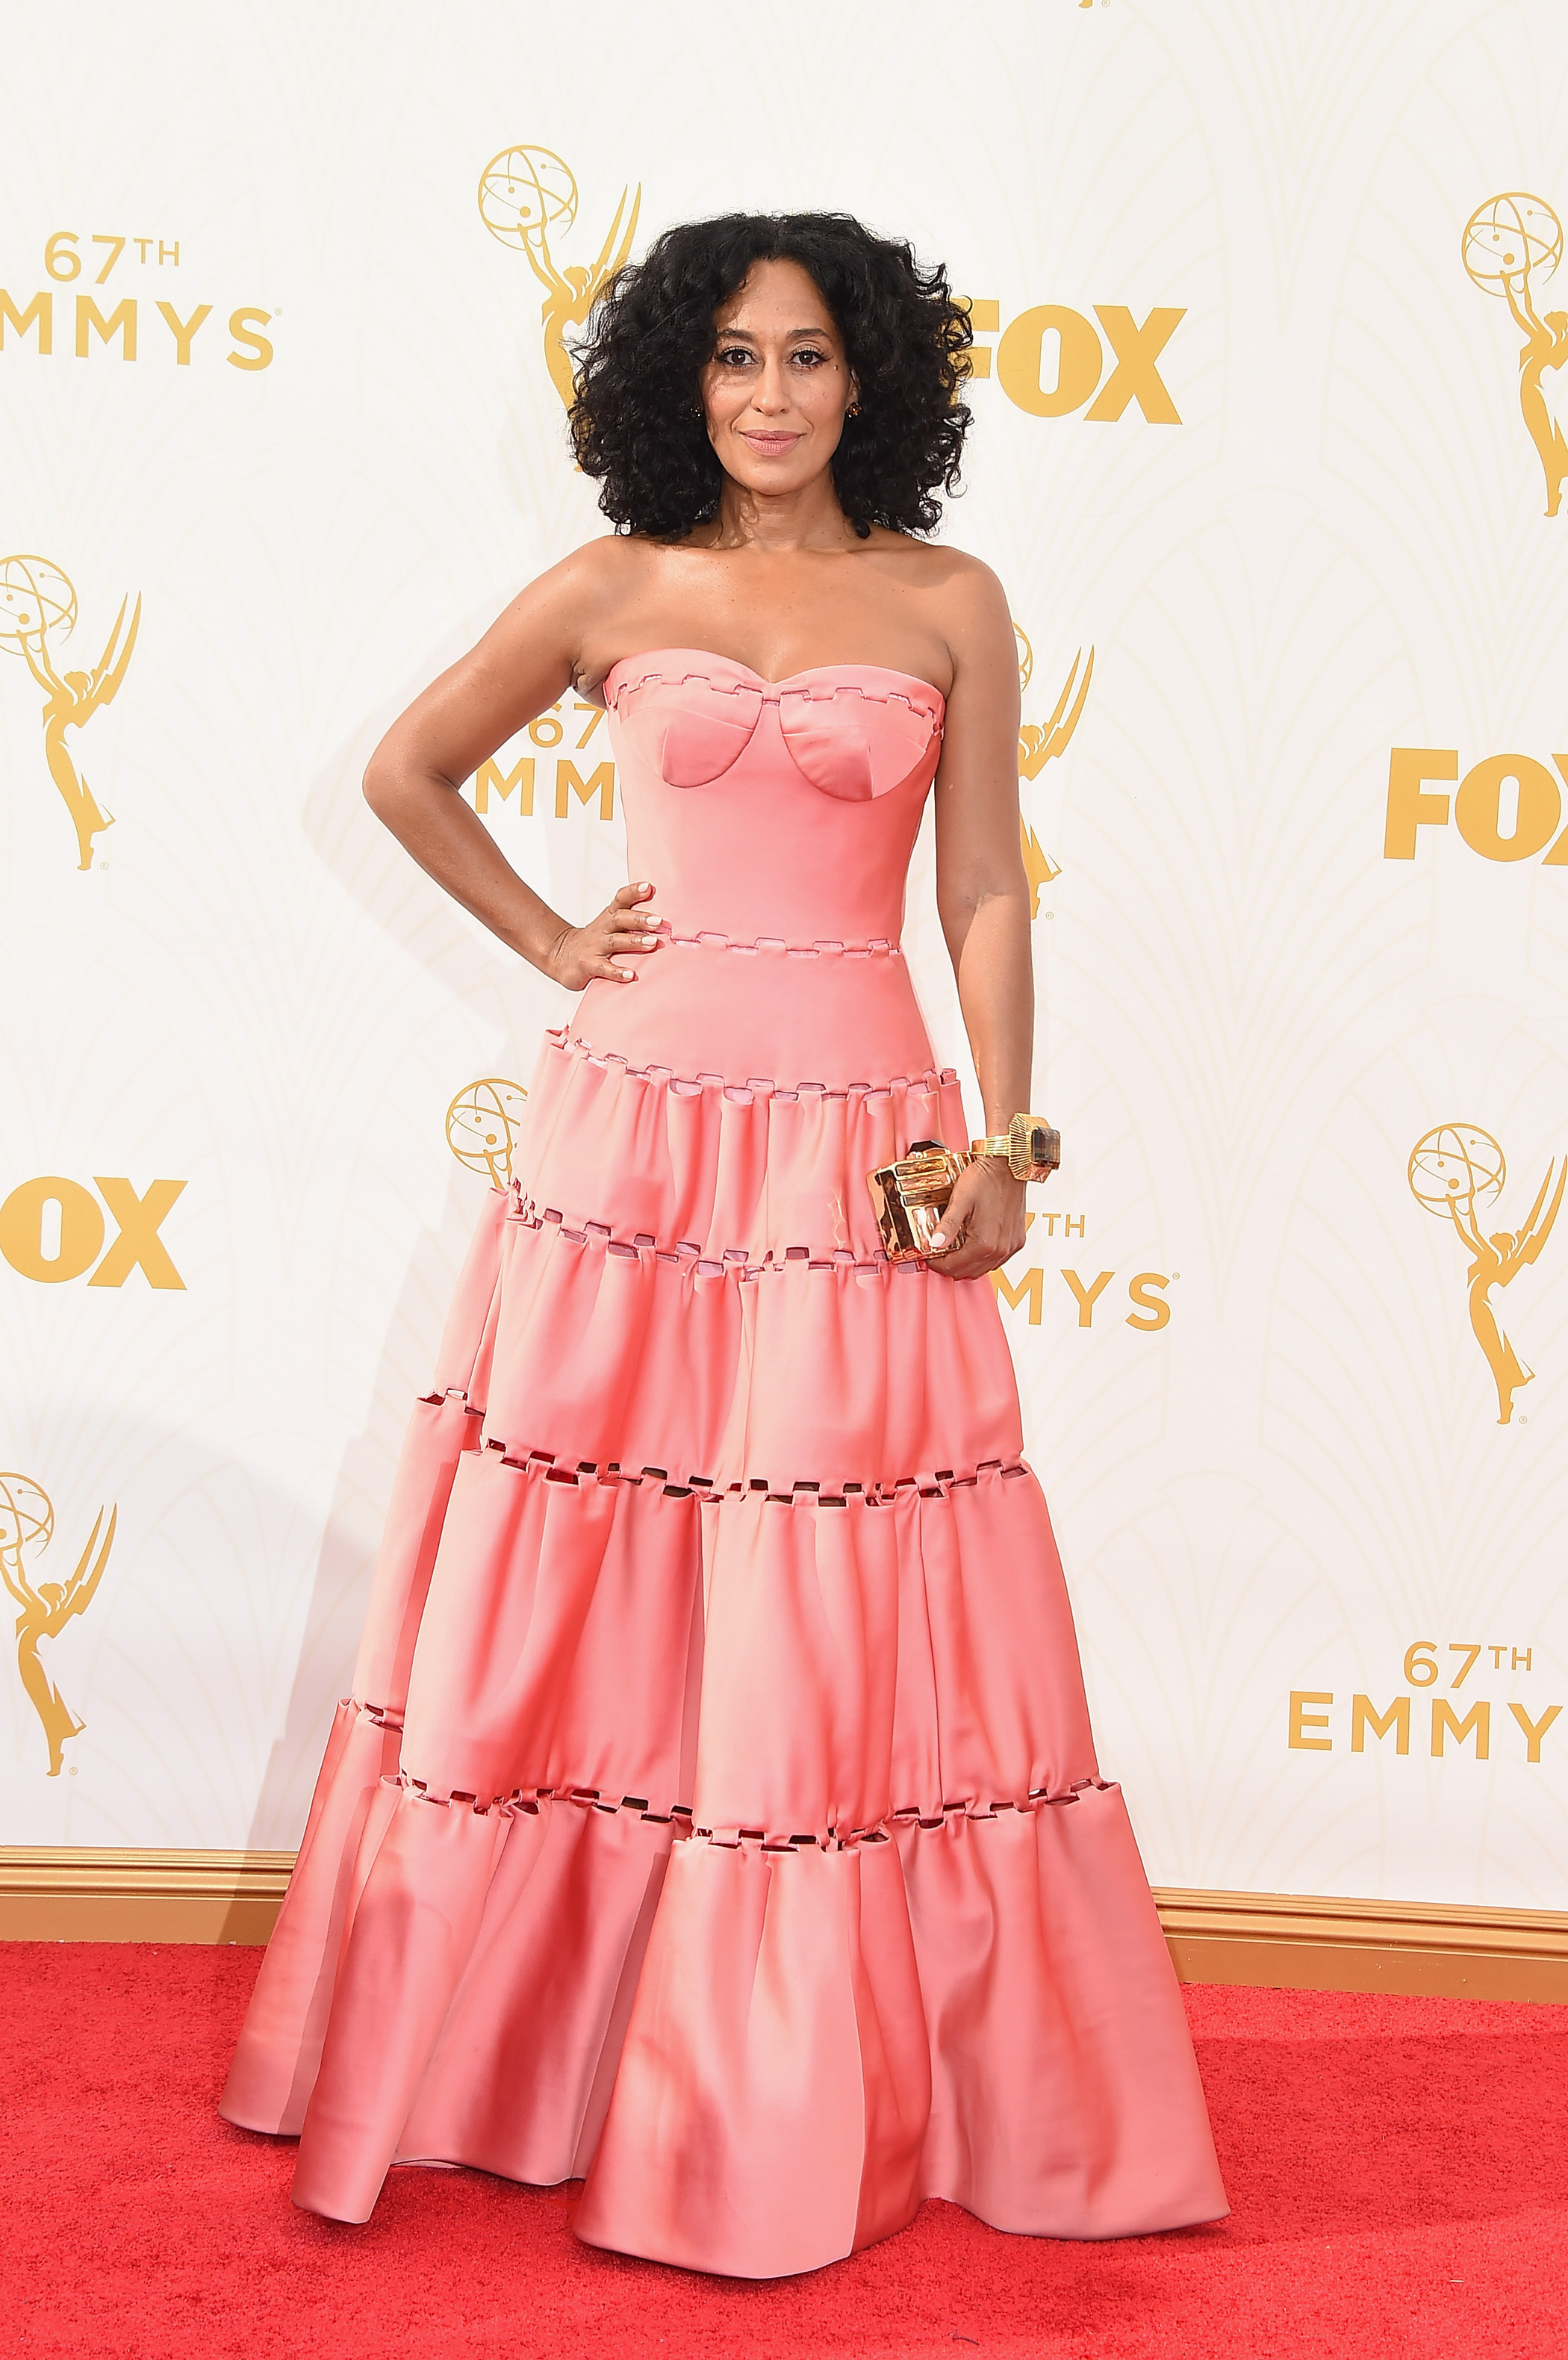 Tracee Ellis at the 67th Emmy Award on Sept. 20, 2015 in Los Angeles.